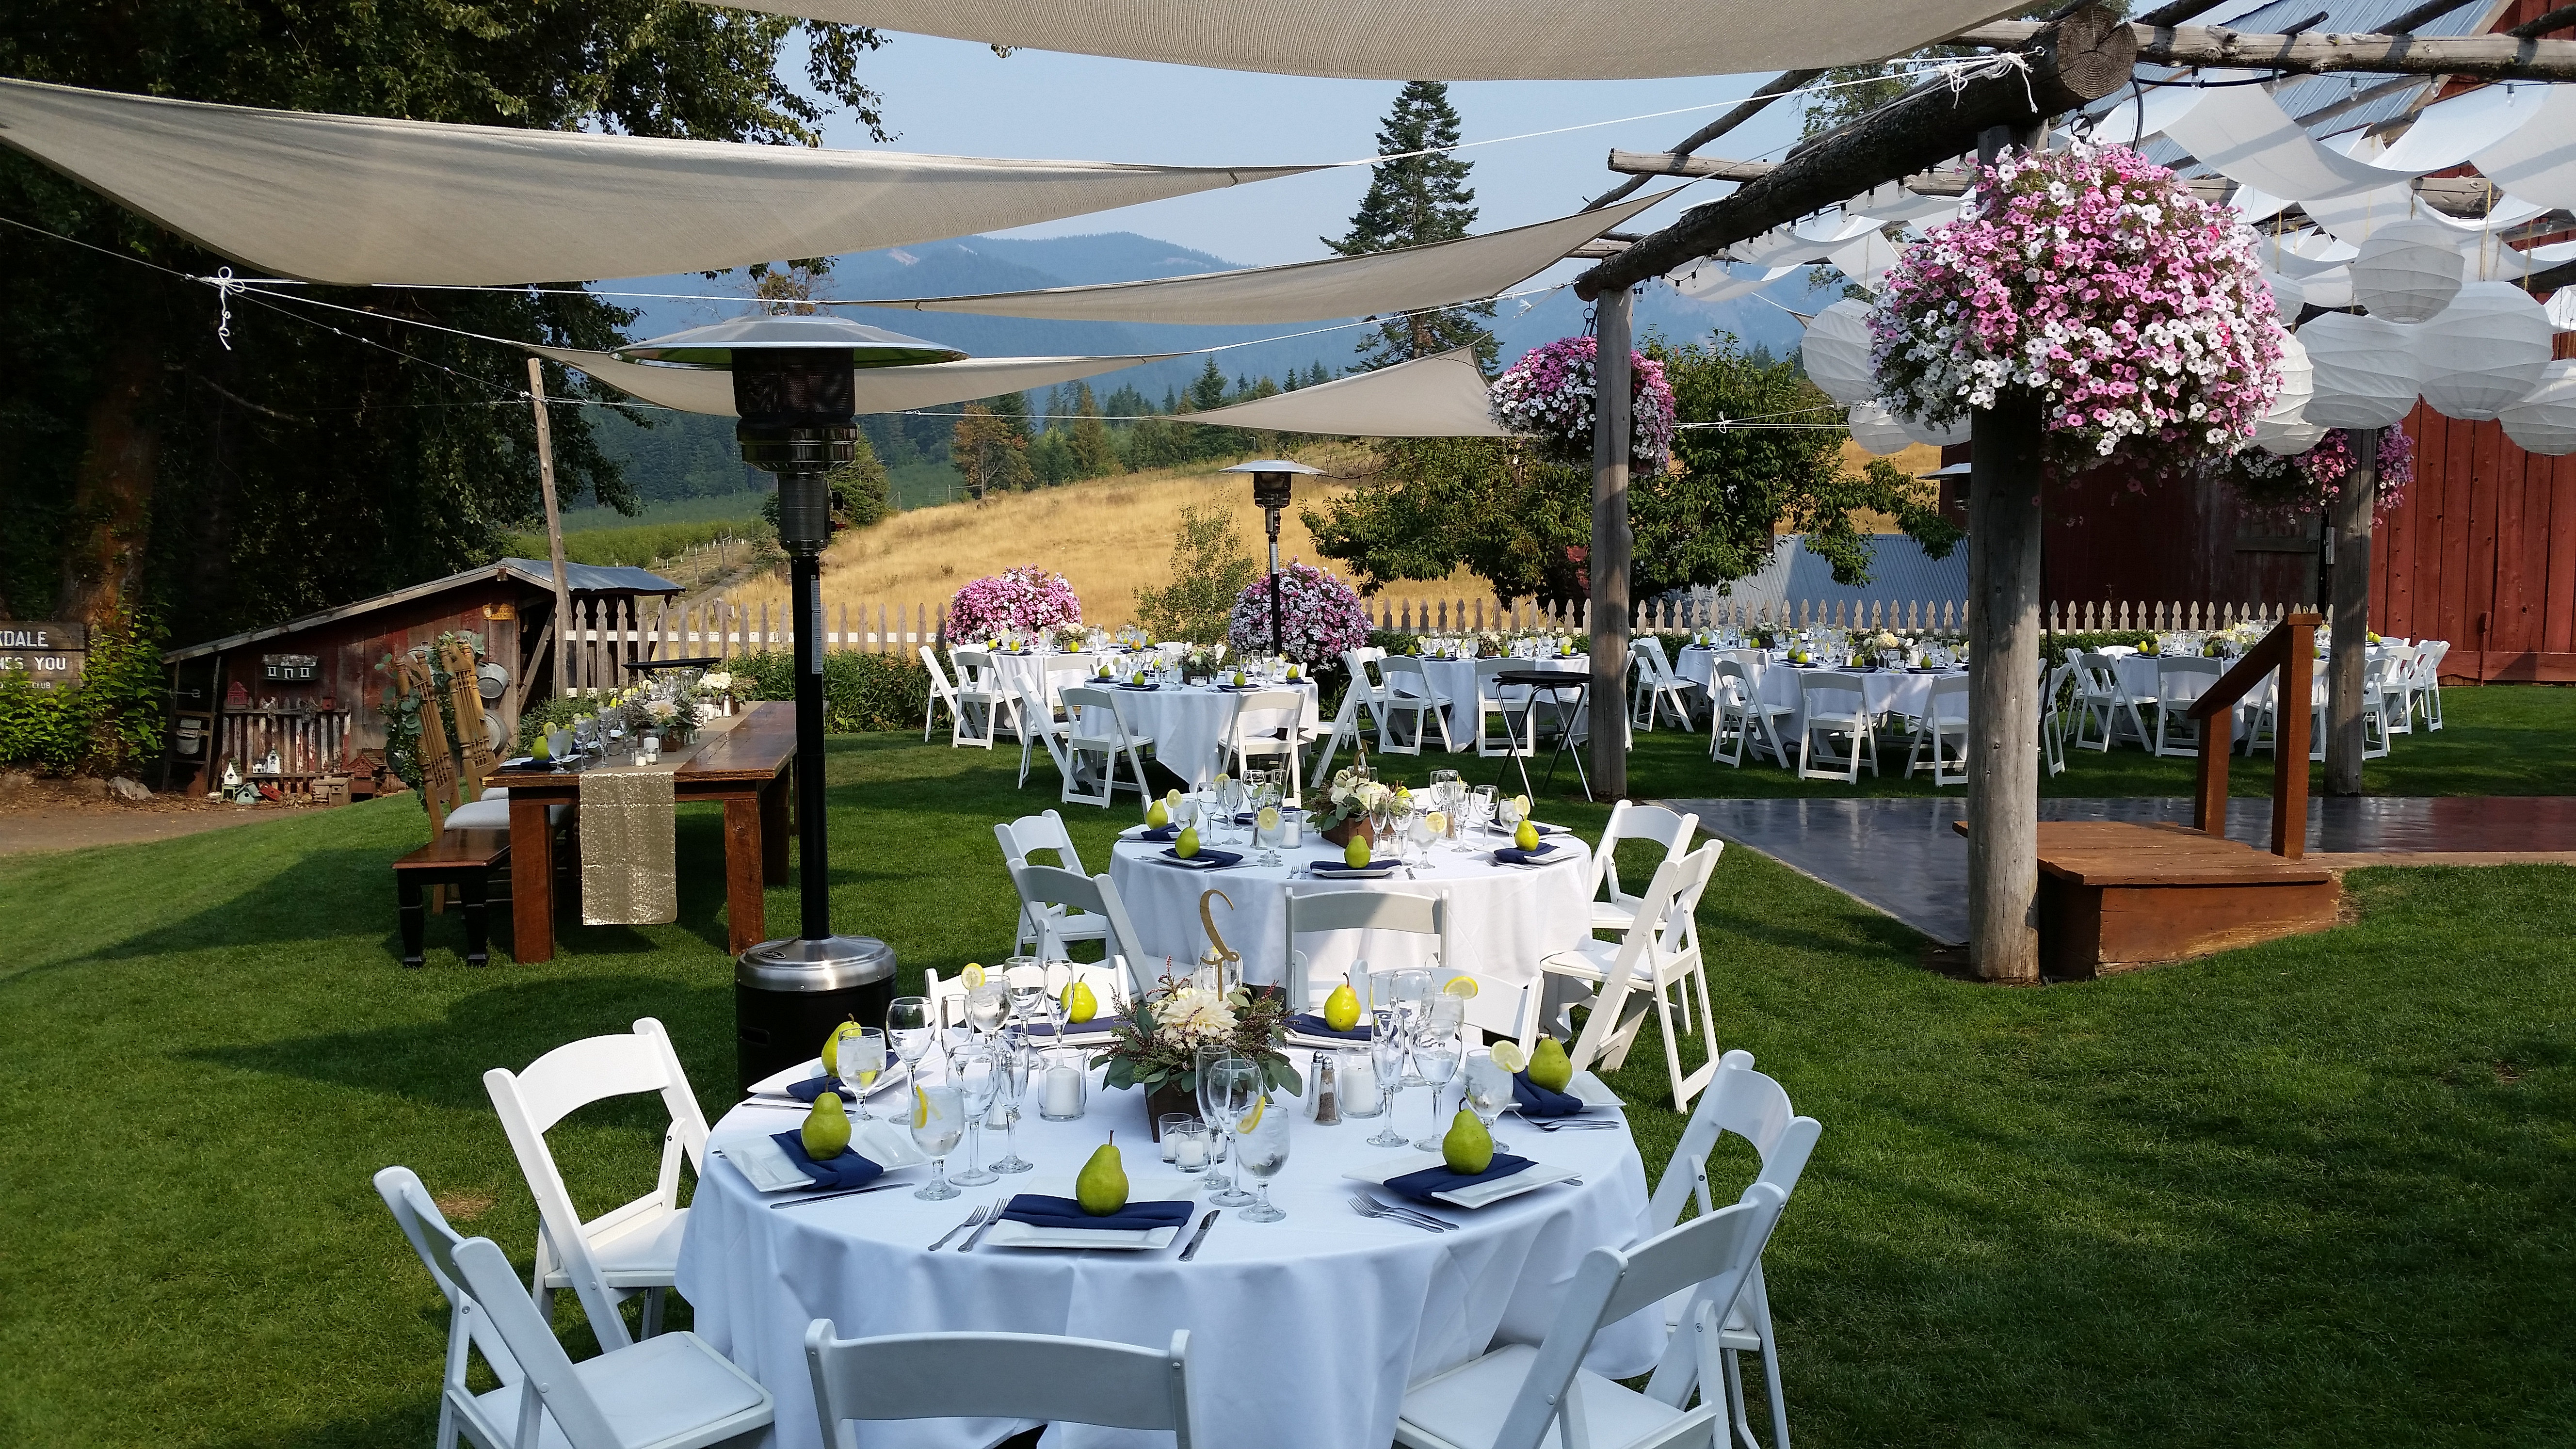 premiere catering services weddings private events portland